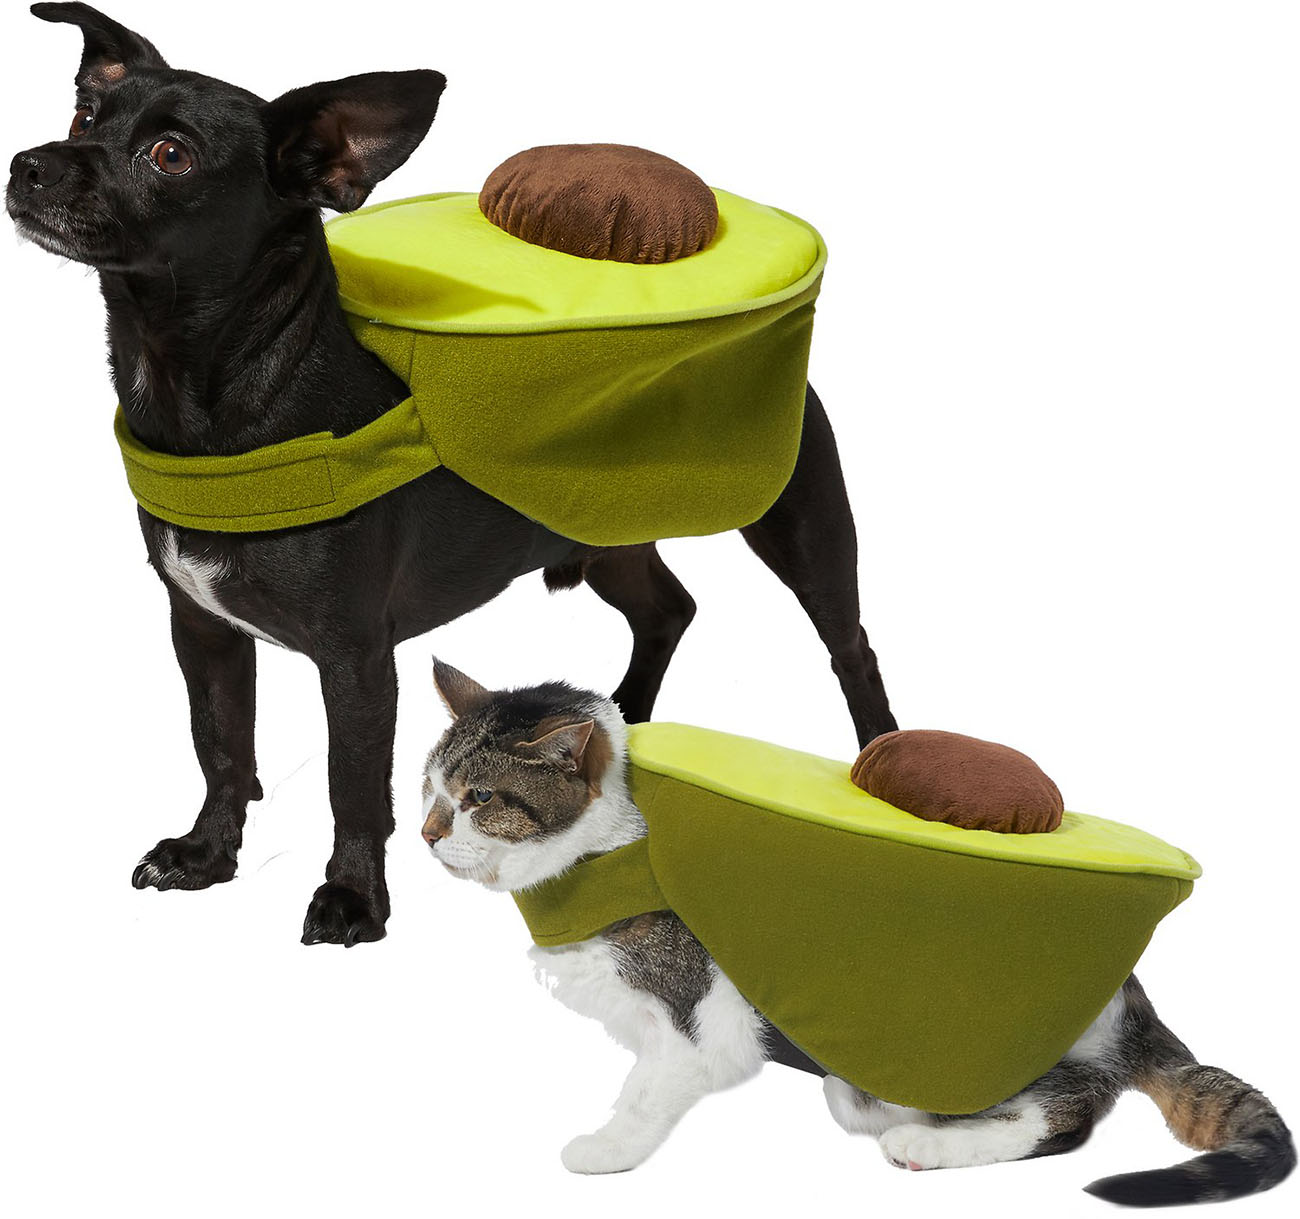 Avocado pet Halloween costume